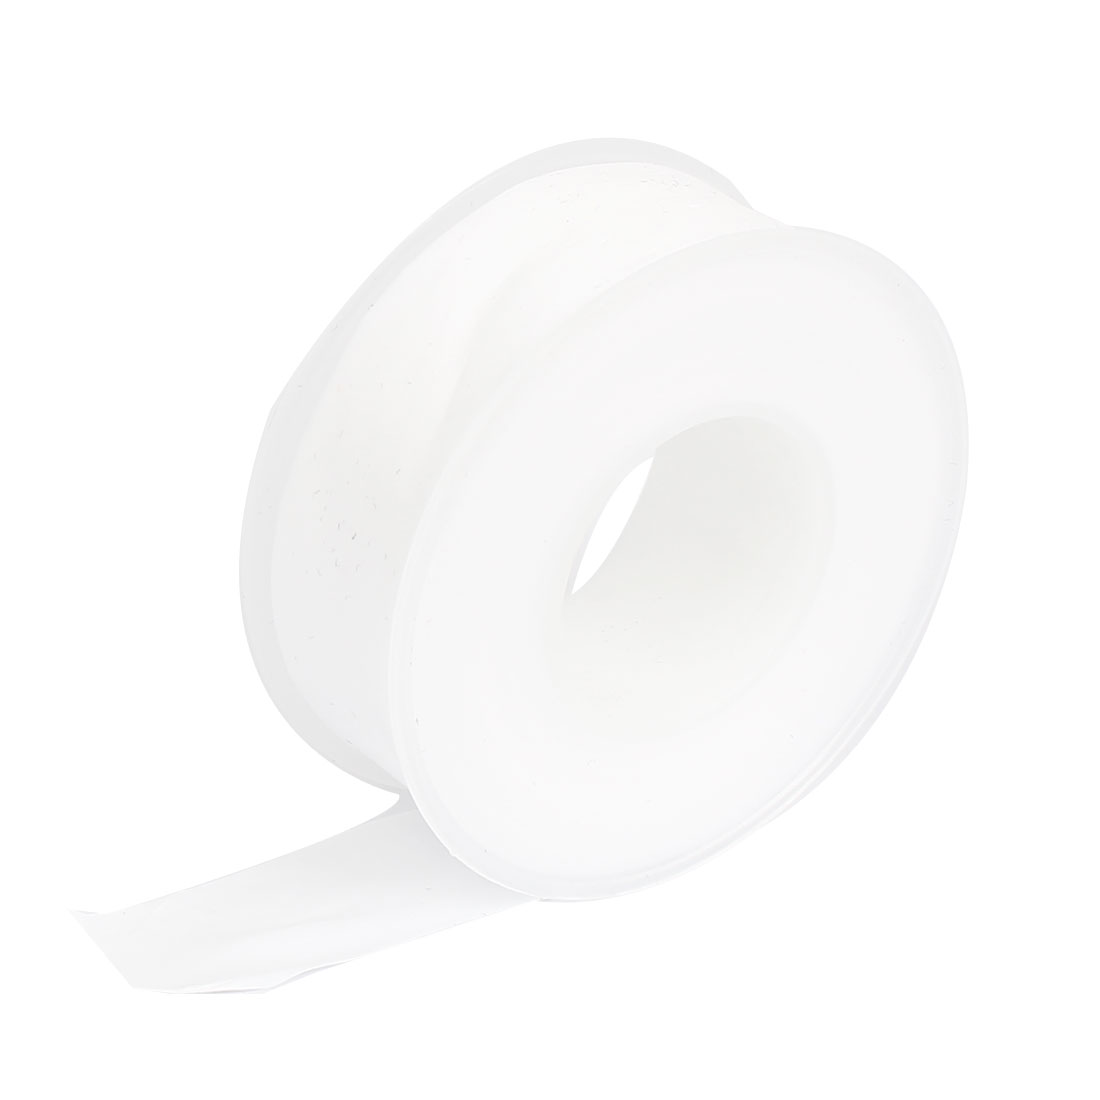 Plumbing Fitting Water Sealing Pipe 17mm Width PTFE Thread Seal Tape Wrap Roll White